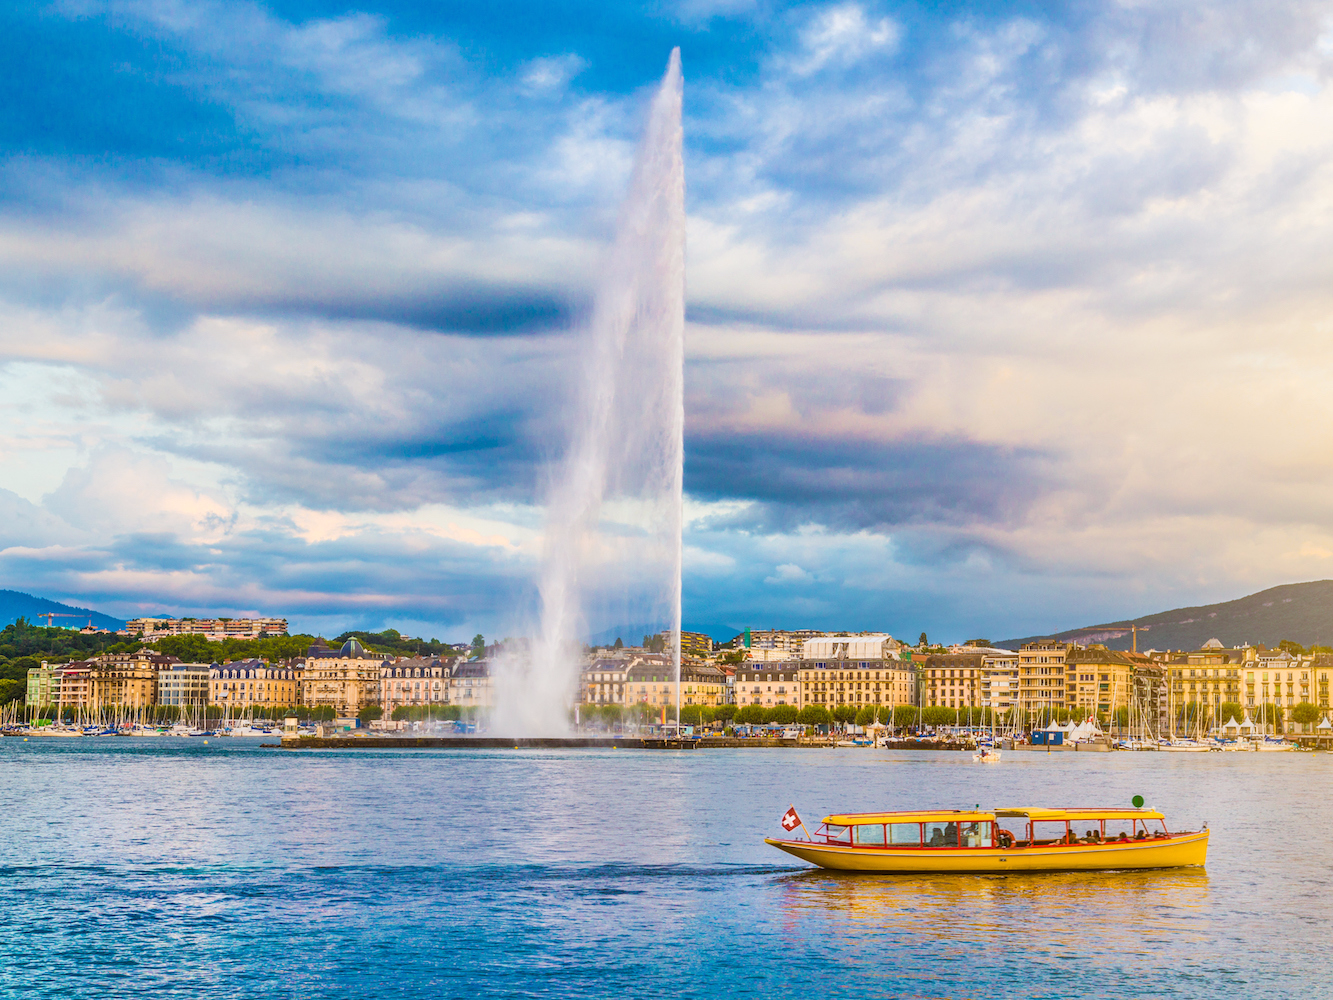 Located in the French part of Switzerland, Geneva has a definite French flair, from the language to the food. The city sits on Lake Geneva and is home to both the United Nations and Red Cross headquarters.